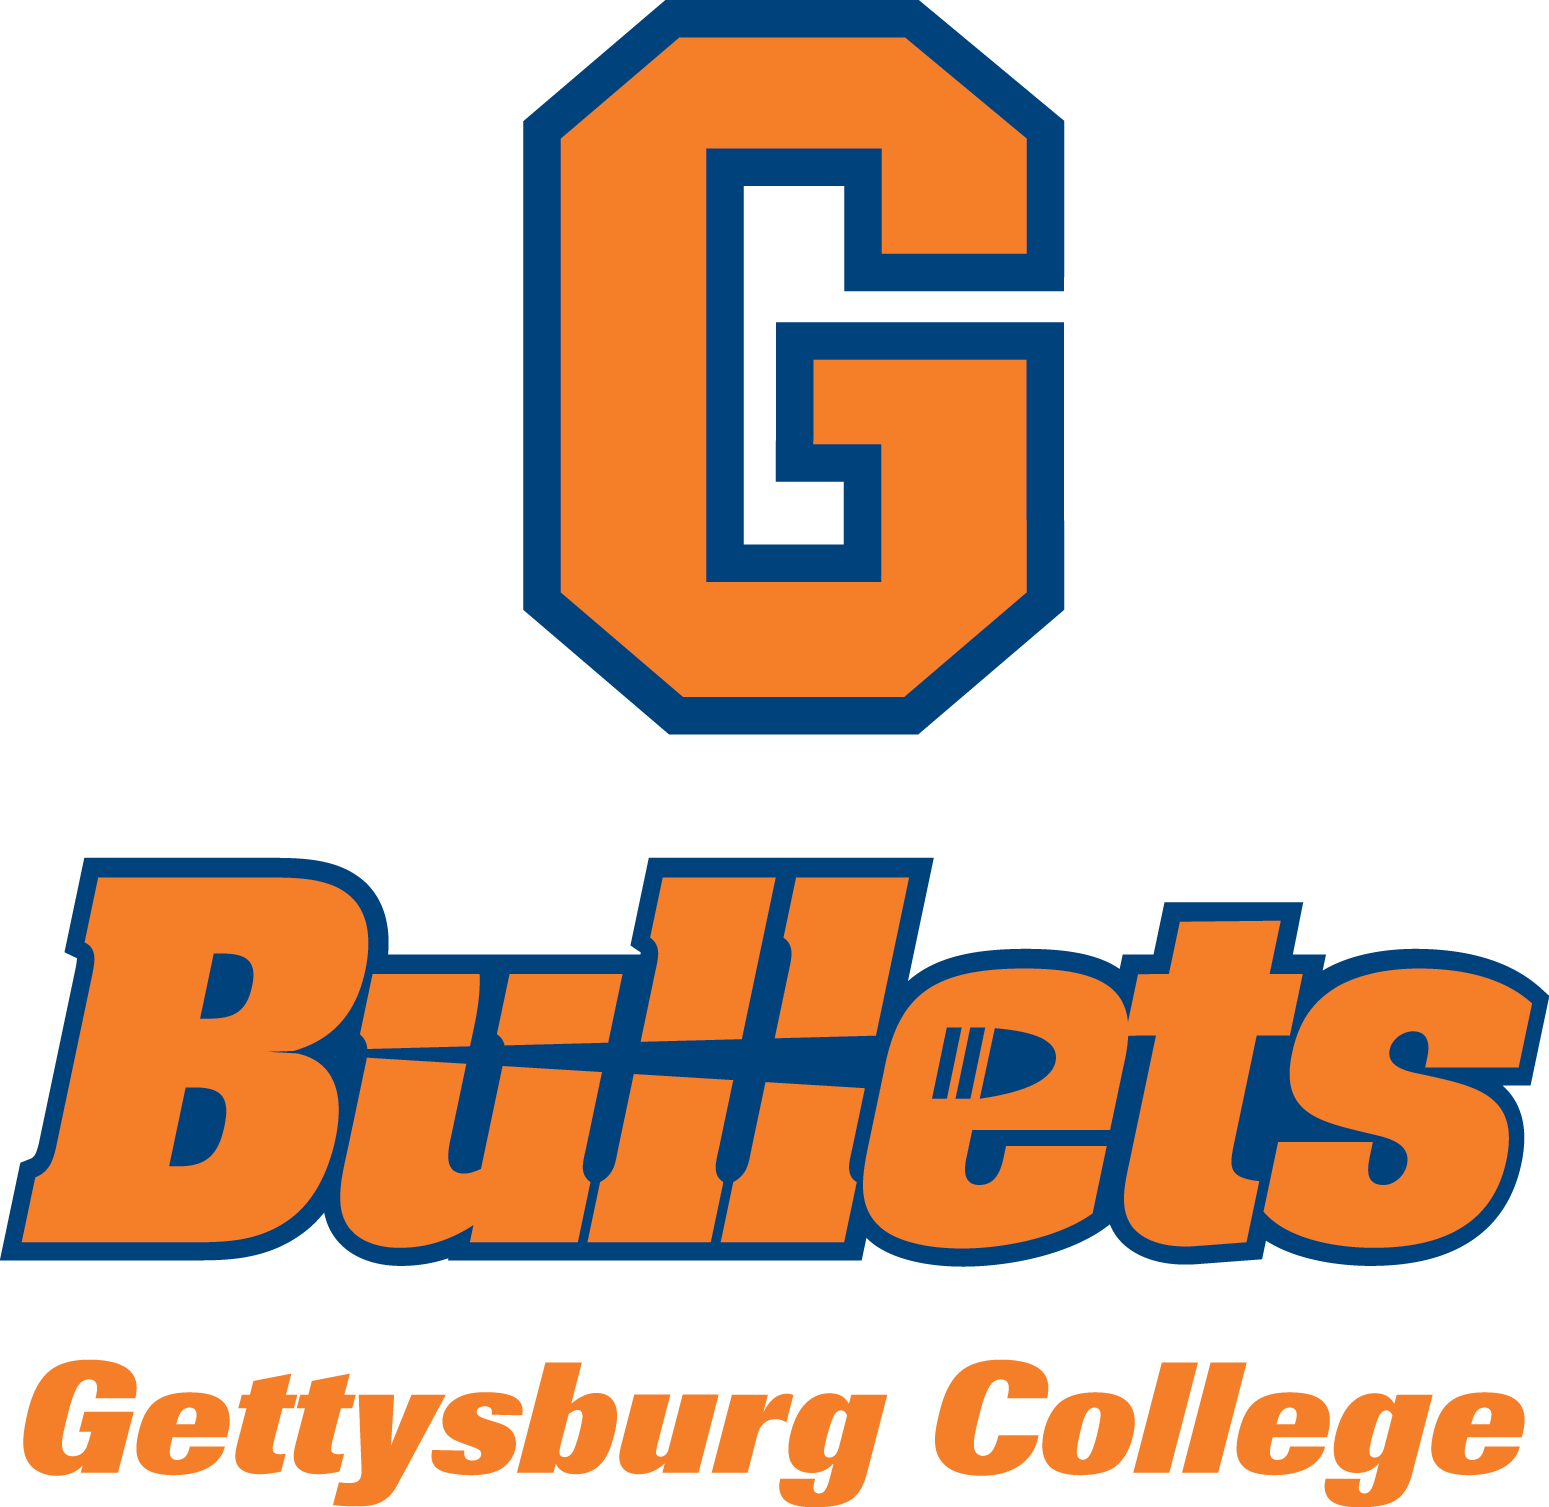 Bullets+GC&AG+(blue+outline+orange+fill)